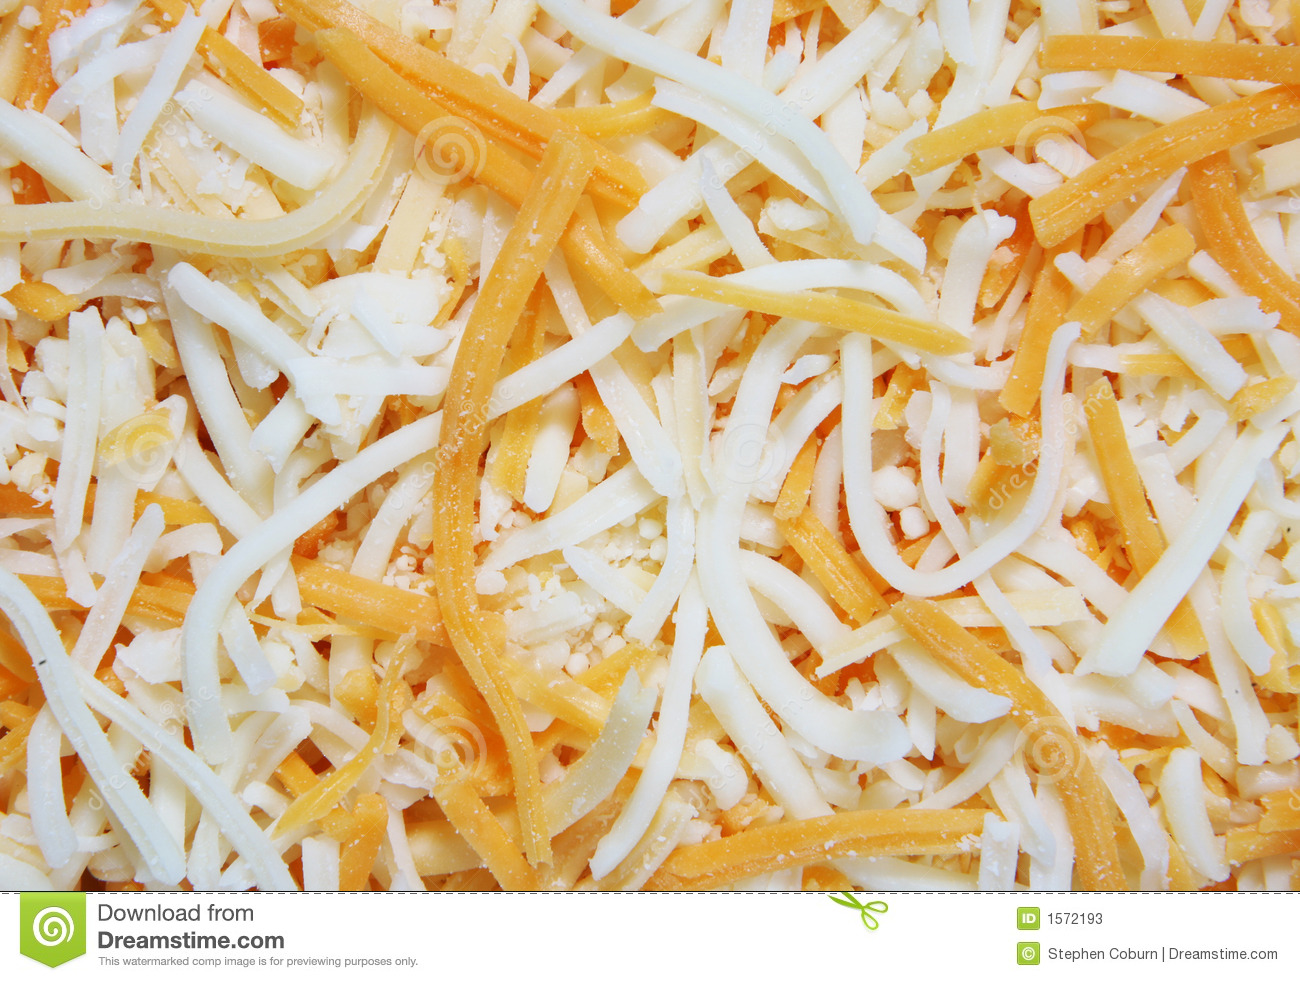 background of shredded cheddar and montery jack cheese.